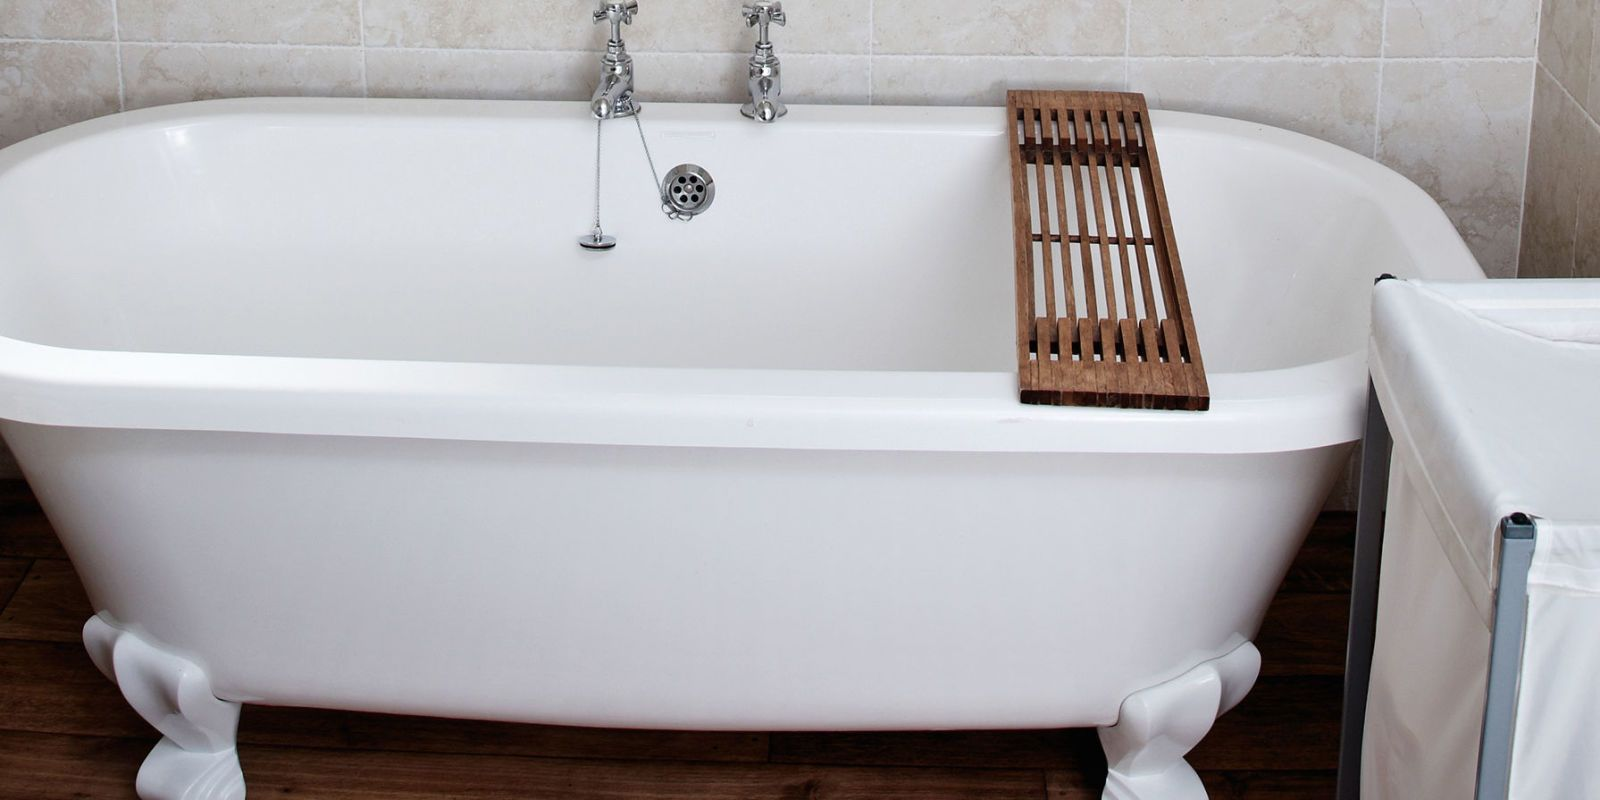 Bath Repair How To Fix Chips In Ceramic Porcelain And